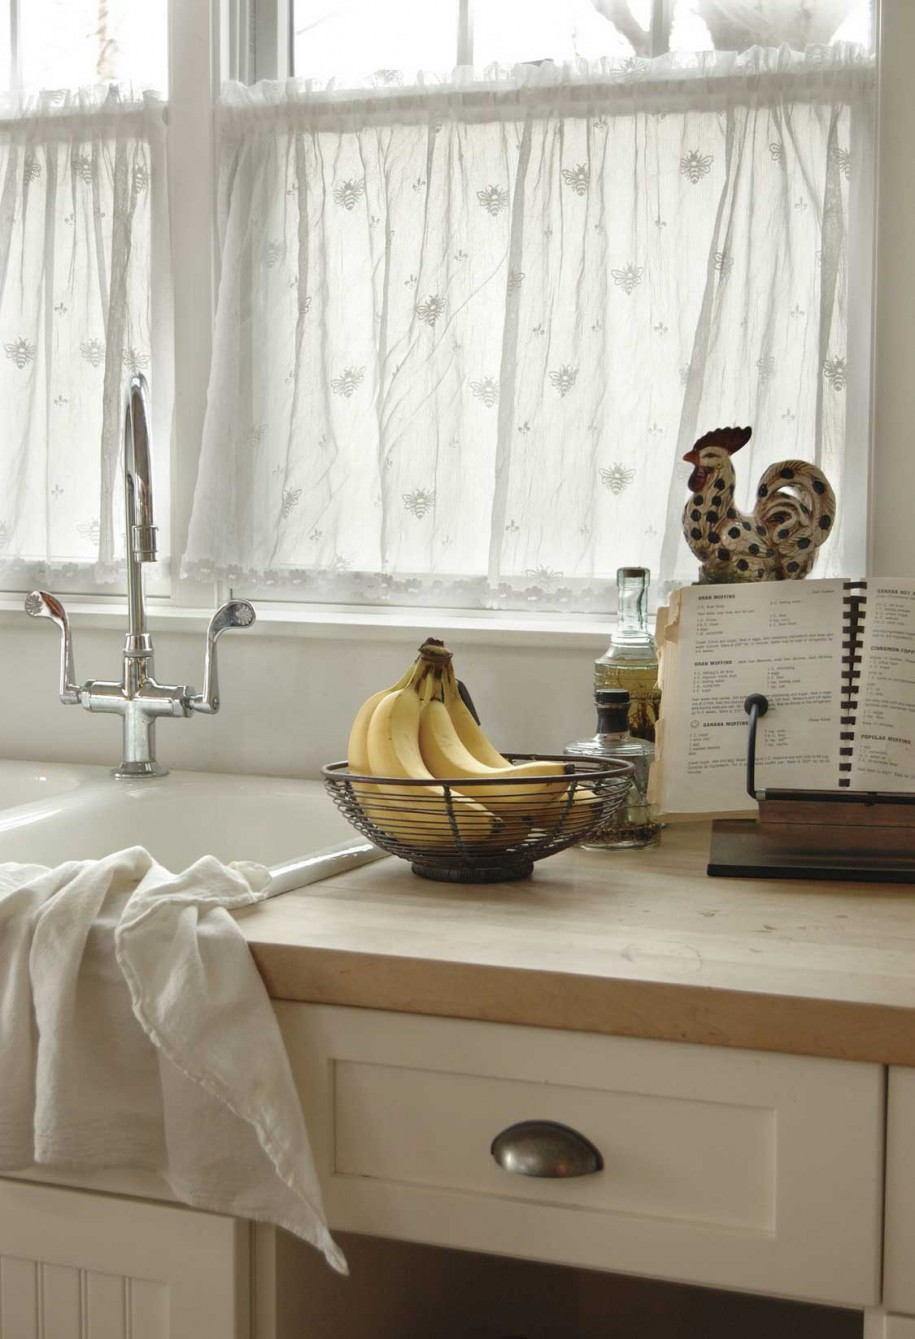 Winsome Fabric Window Curtain also Single Sink and Stainless Steel Faucet